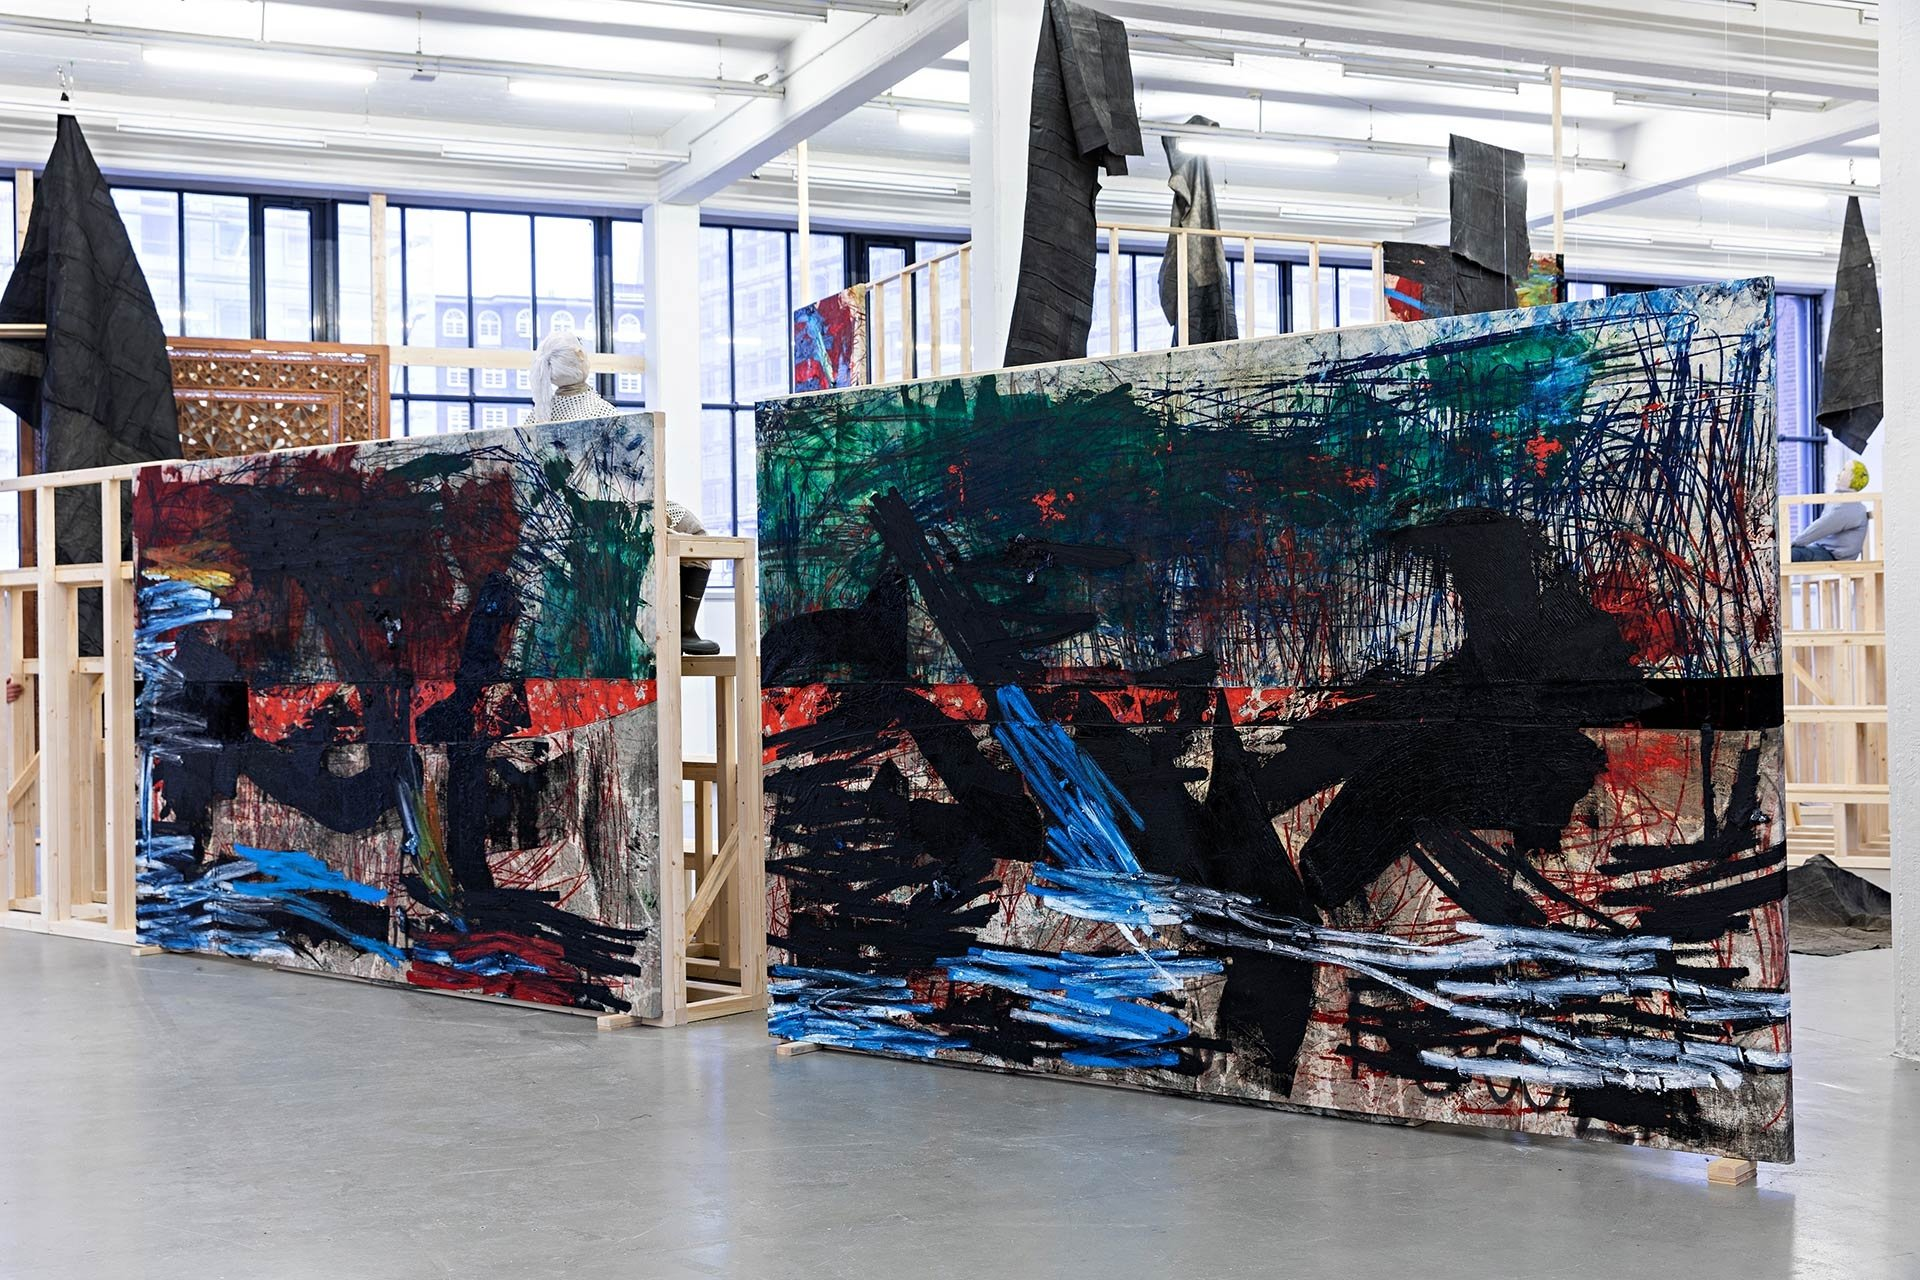 A photo of an installation by Oscar Murillo, titled Horizontal Darkness in Search of Solidarity at Kunstverein in Hamburg, Germany, dated 2019.